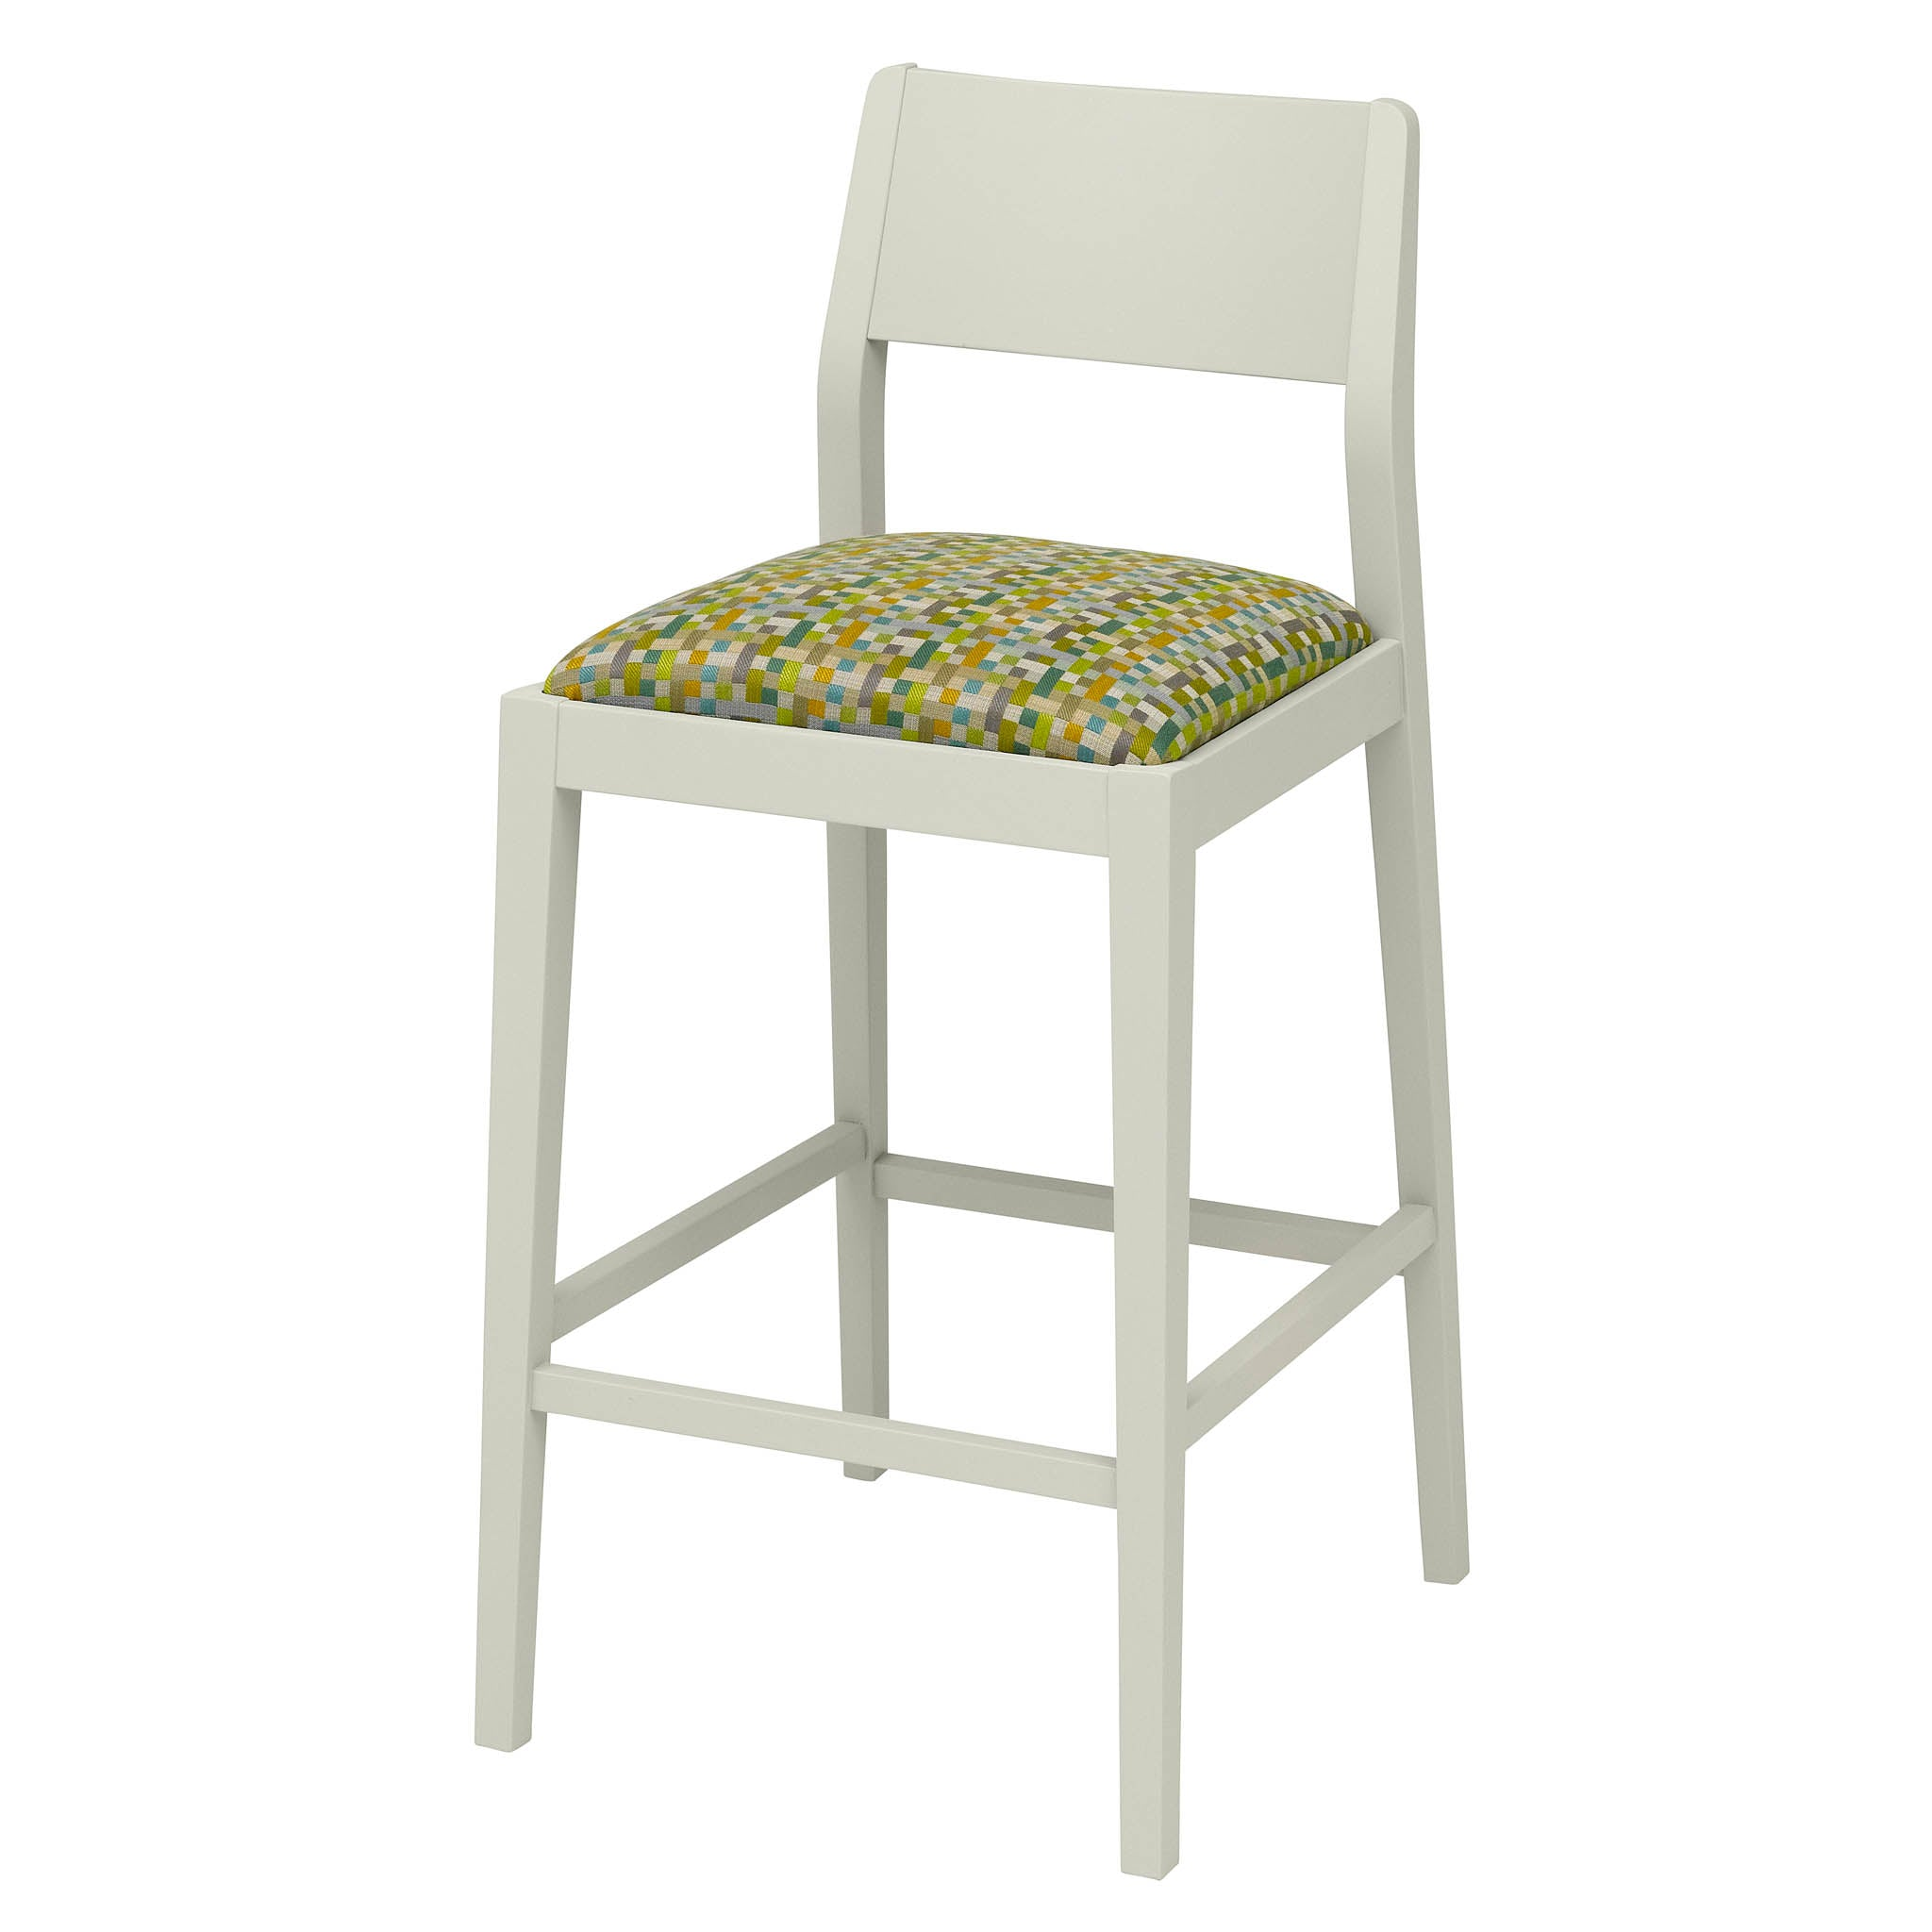 The James Bar Stool